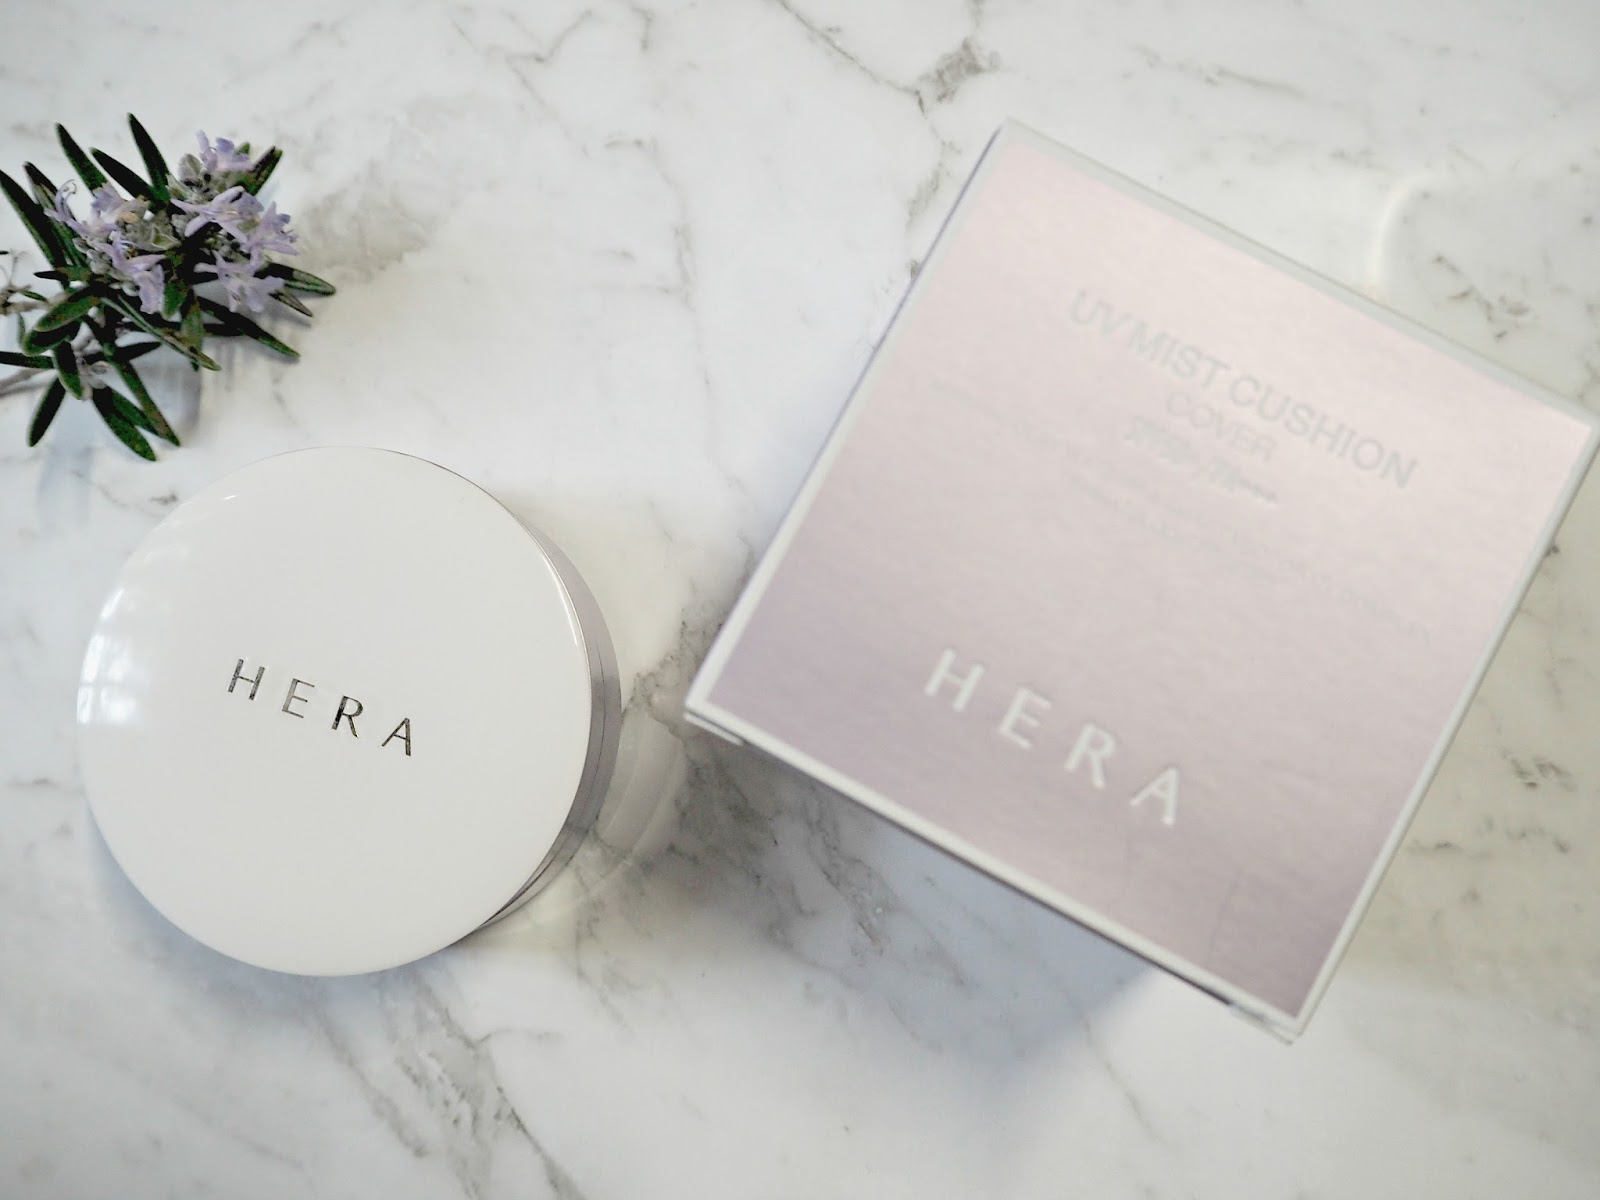 HERA UV MIST CUSHION COVER 2016 poshmakeupnstuff.blogspot.com